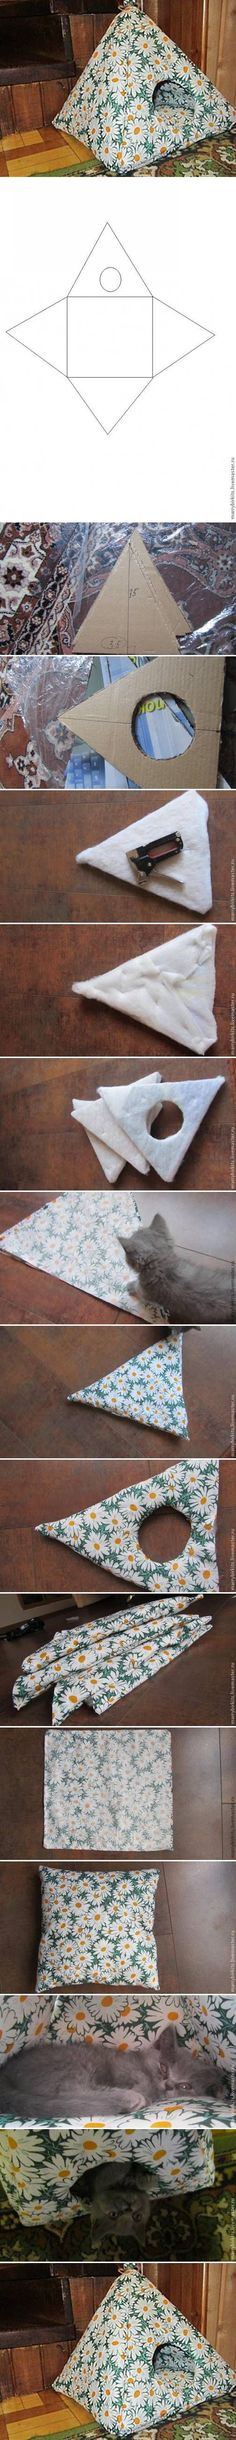 DIY House for Cat or small dog or make it small enough for any of your pet rodents. Love rats and all!